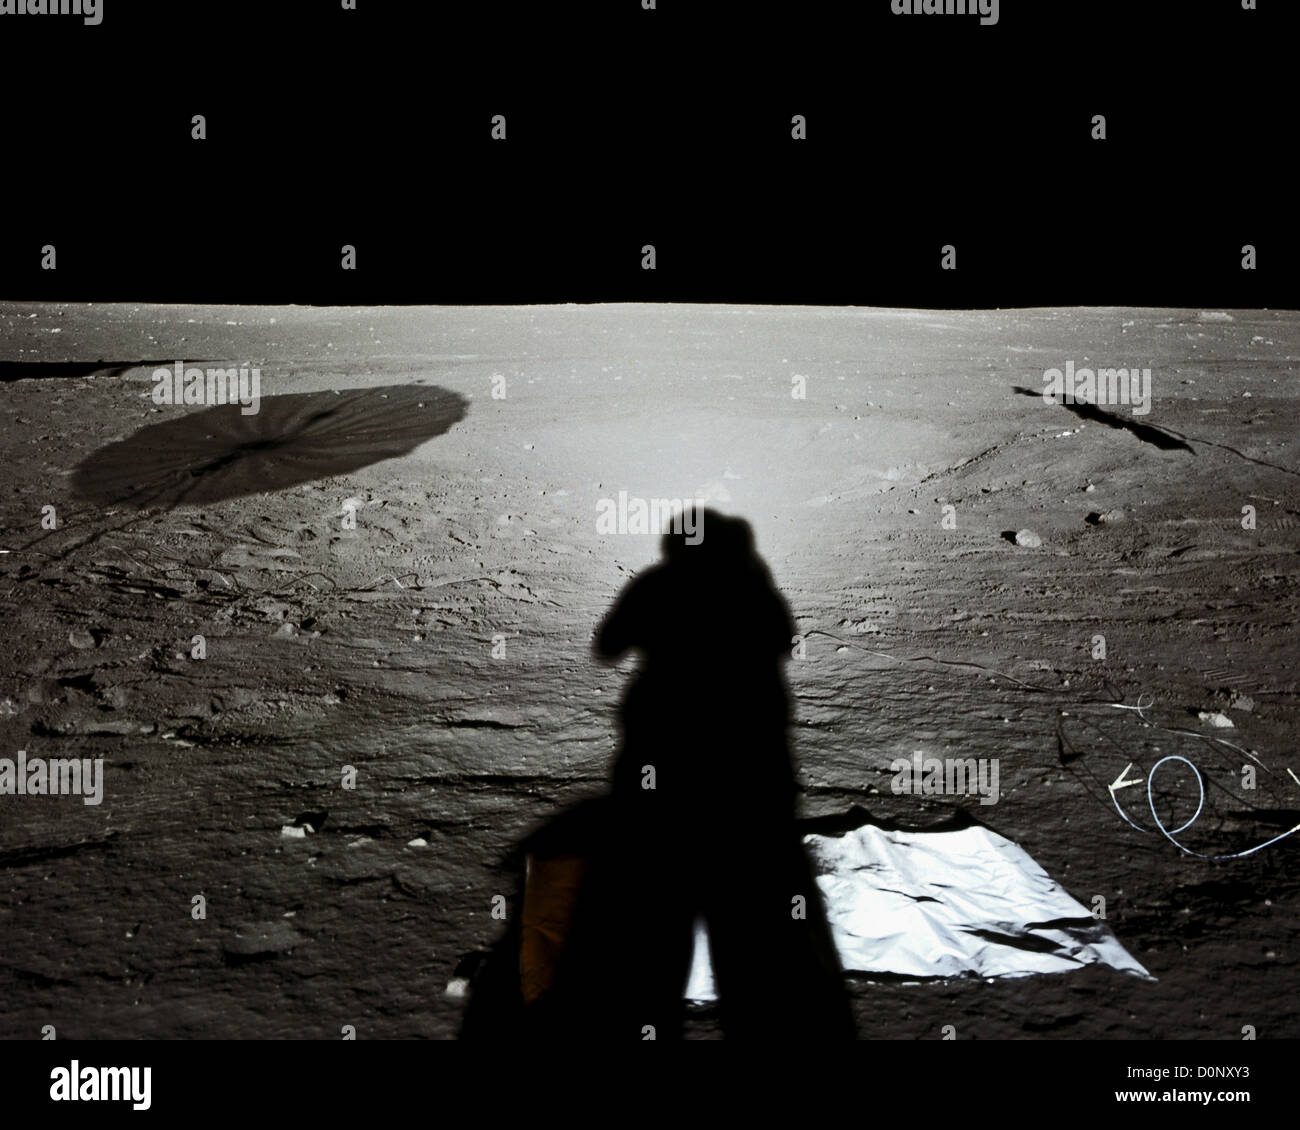 Apollo 12 - Halo and Shadow on the Barren Surface of the Moon - Stock Image